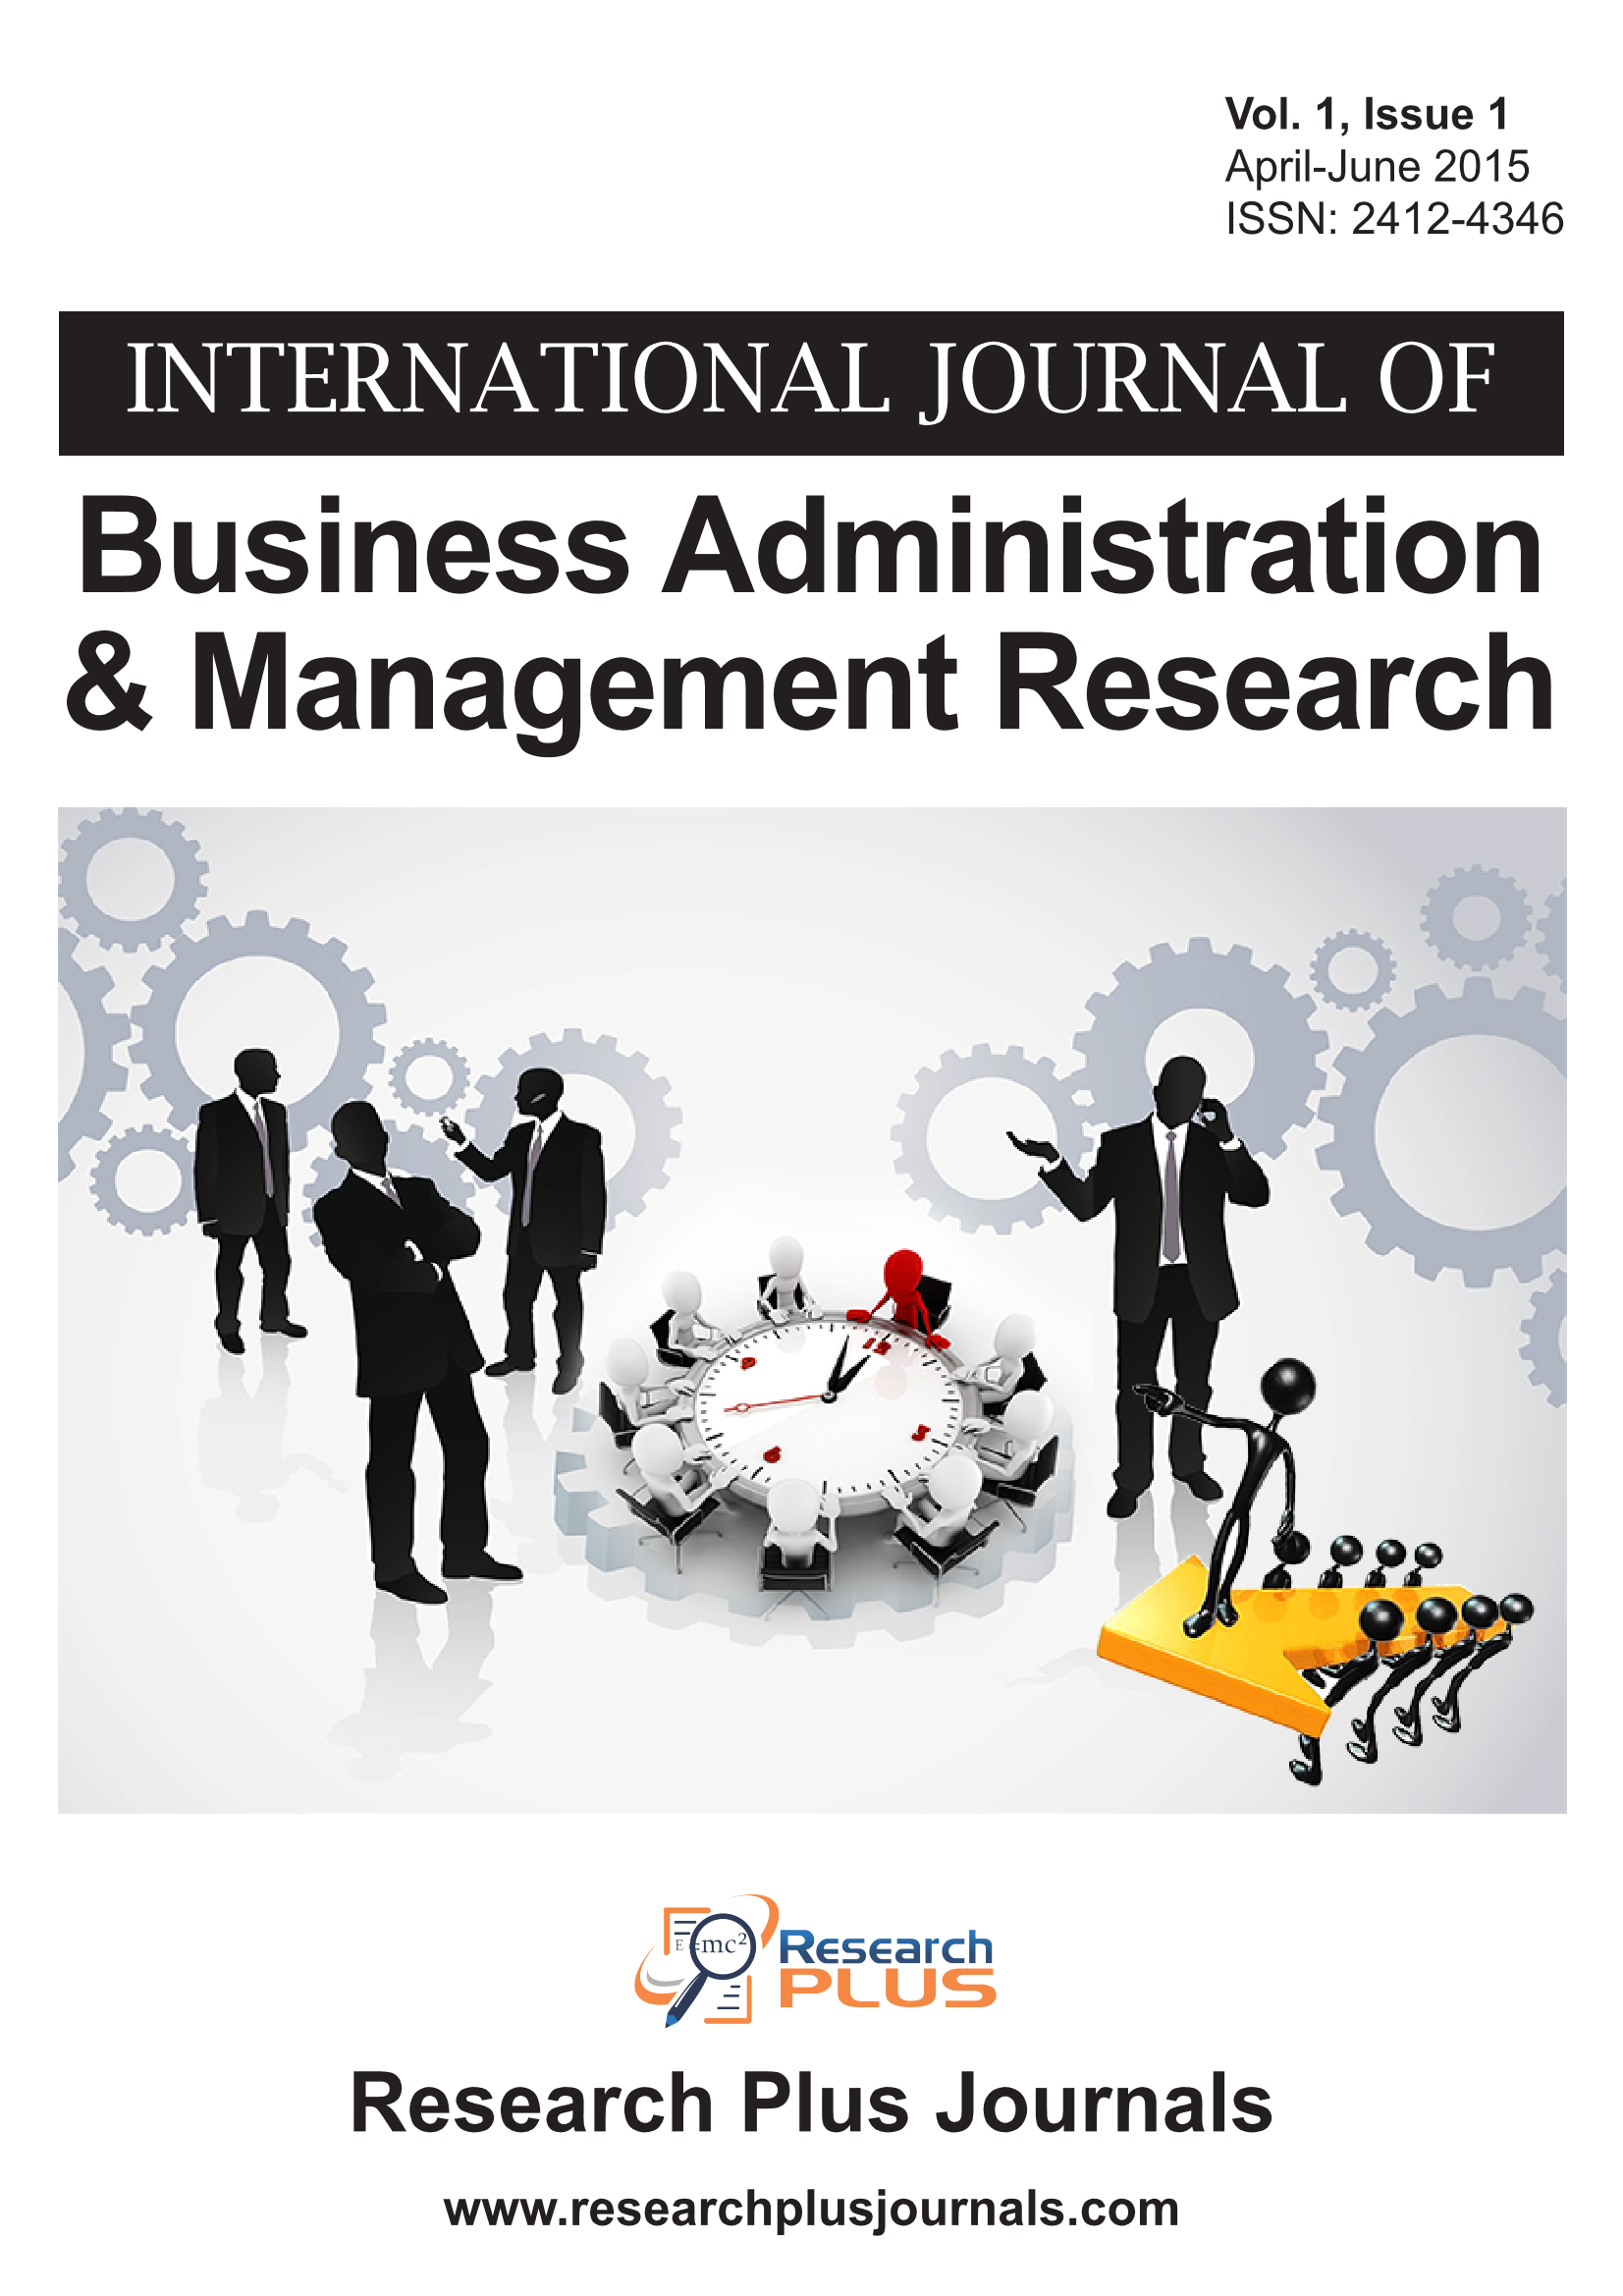 Volume 1, Issue 1 International Journal of Business Administration and Management Research